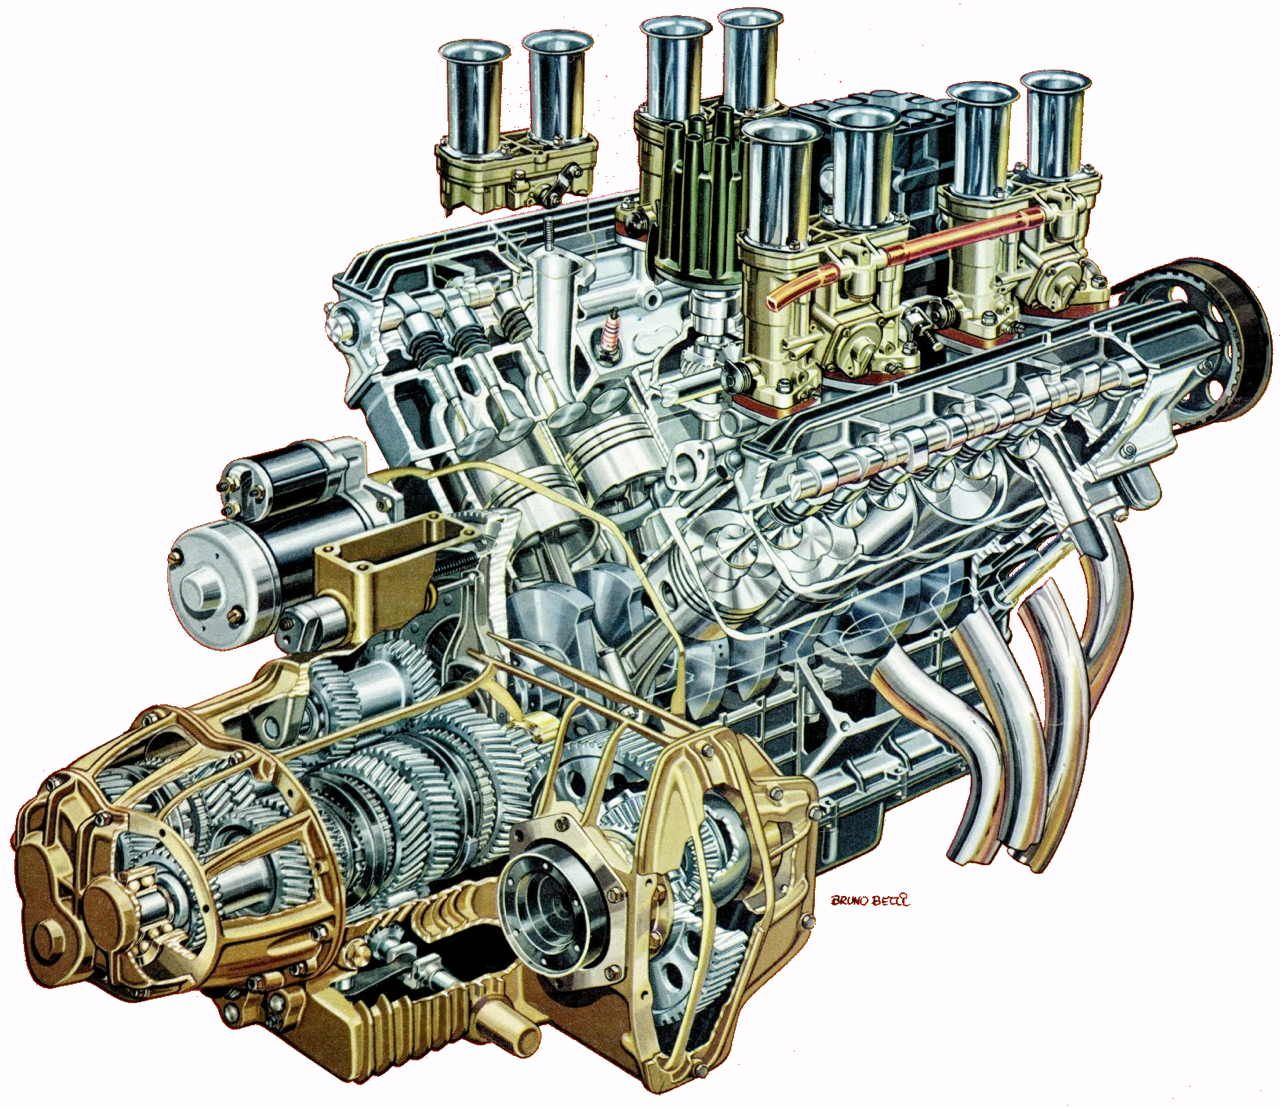 V8 Engine Cutaway Illustration Race Engines Cutaways Pinterest 2002 Ford 4 0 Sohc Diagram